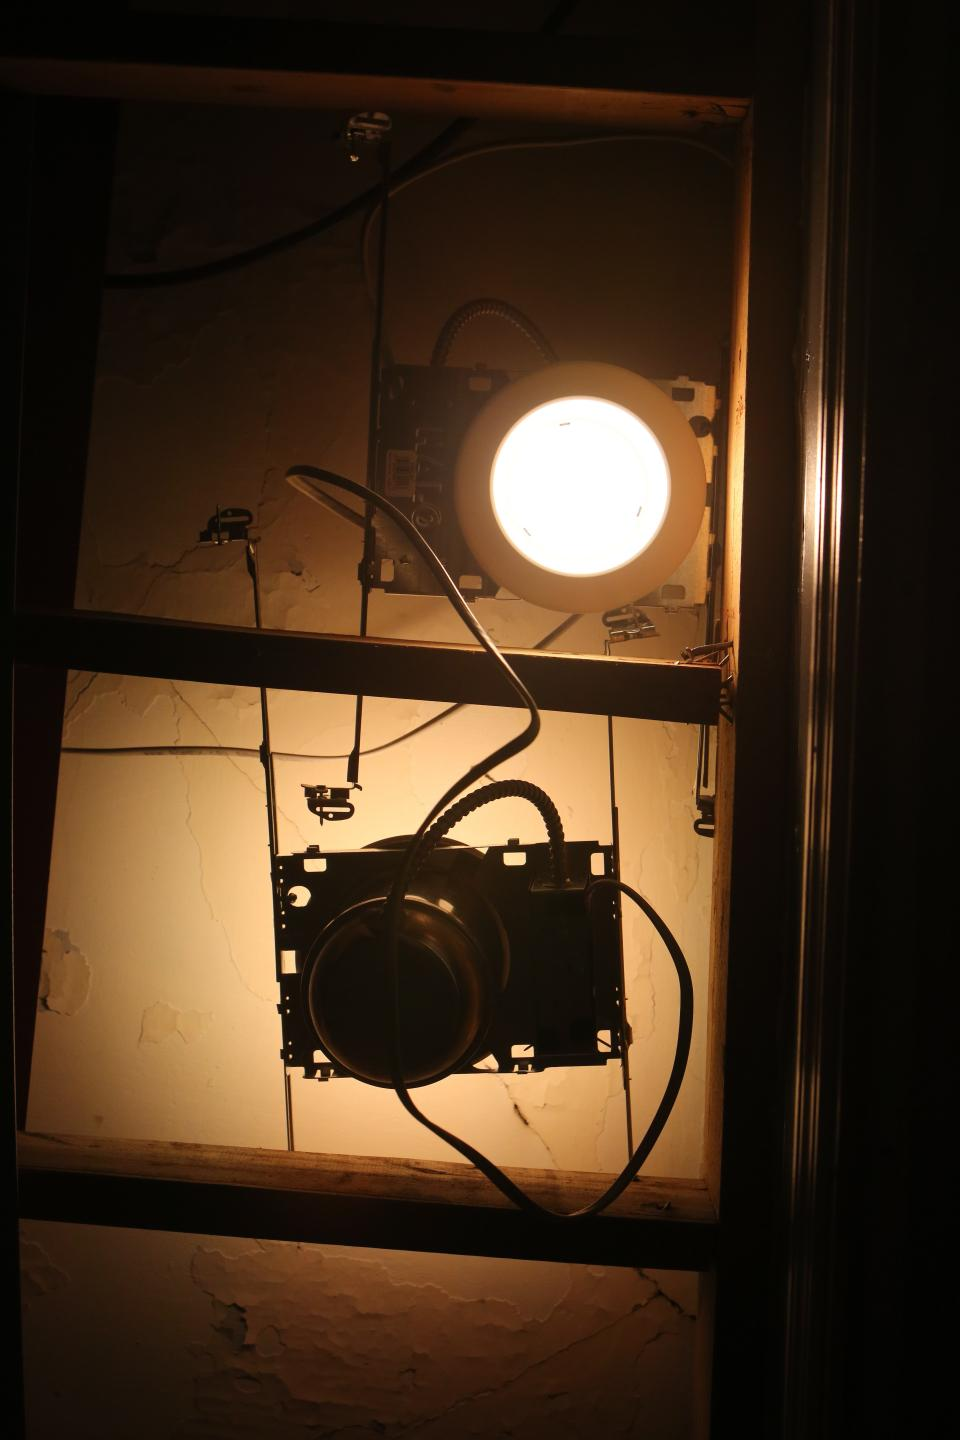 camera lighting lights vintage photoshoot equipment parts